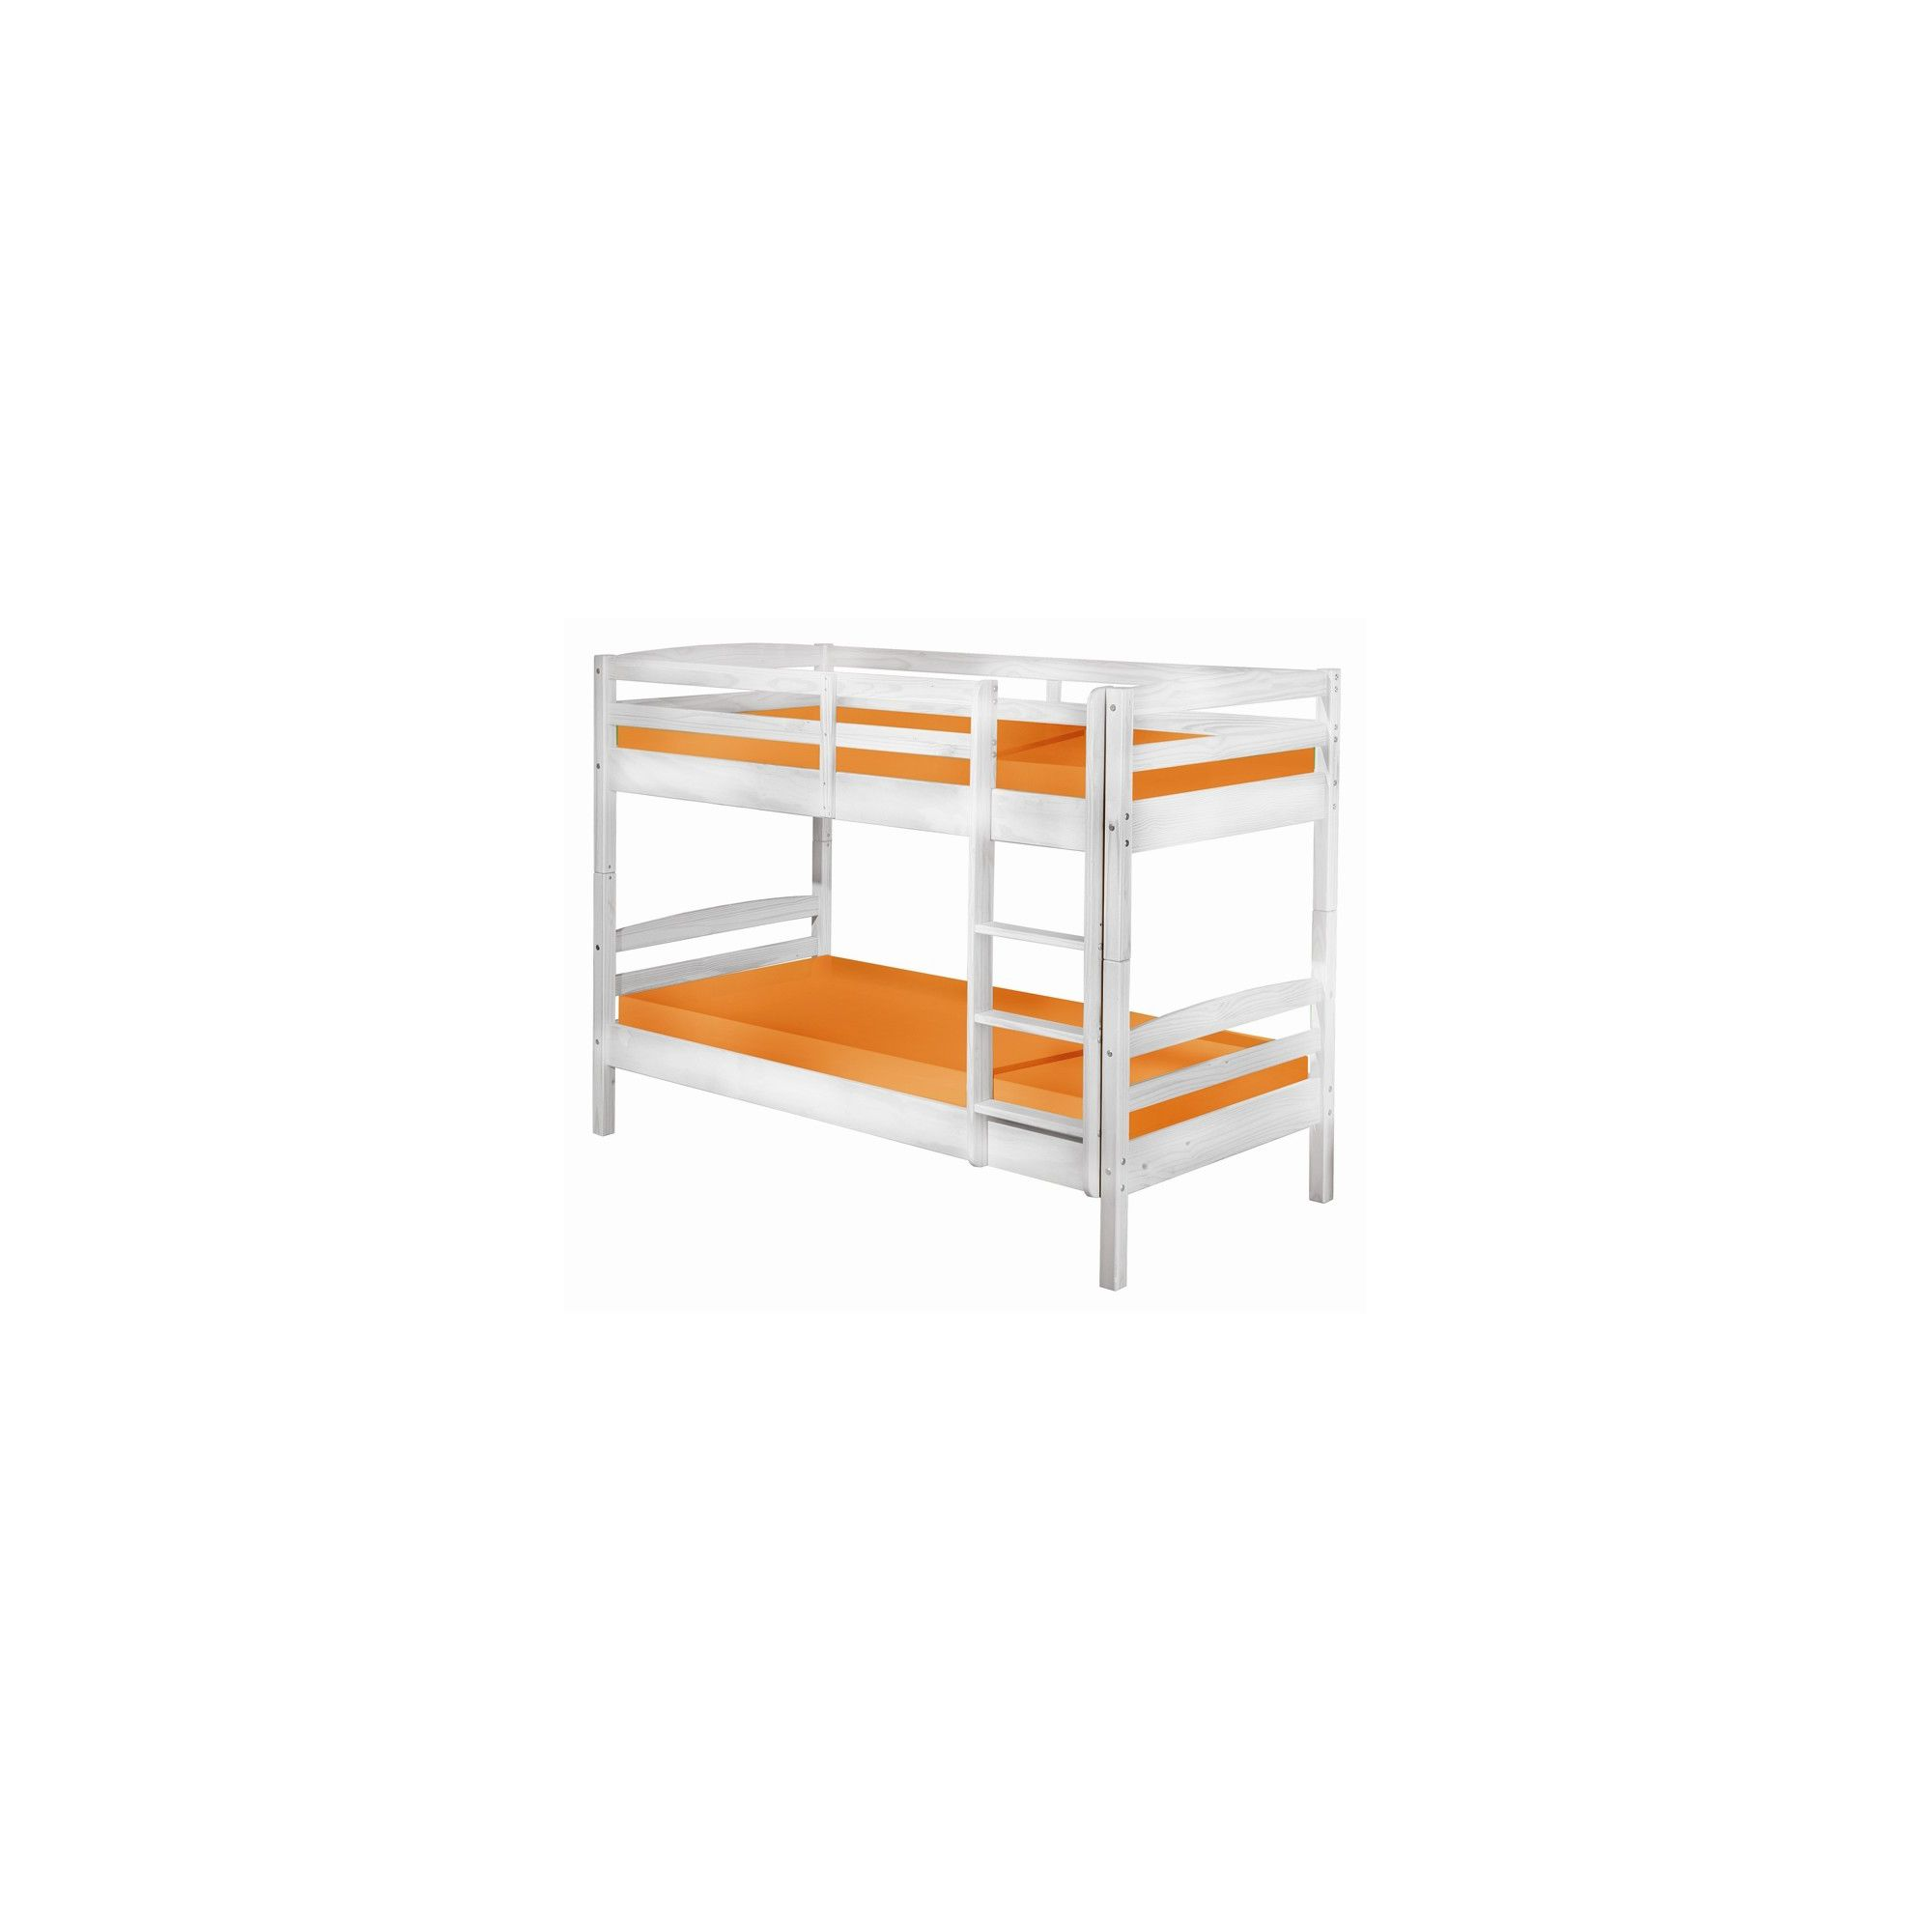 Aspect Design Rick Solid Wood Bunk Bed in White at Tesco Direct